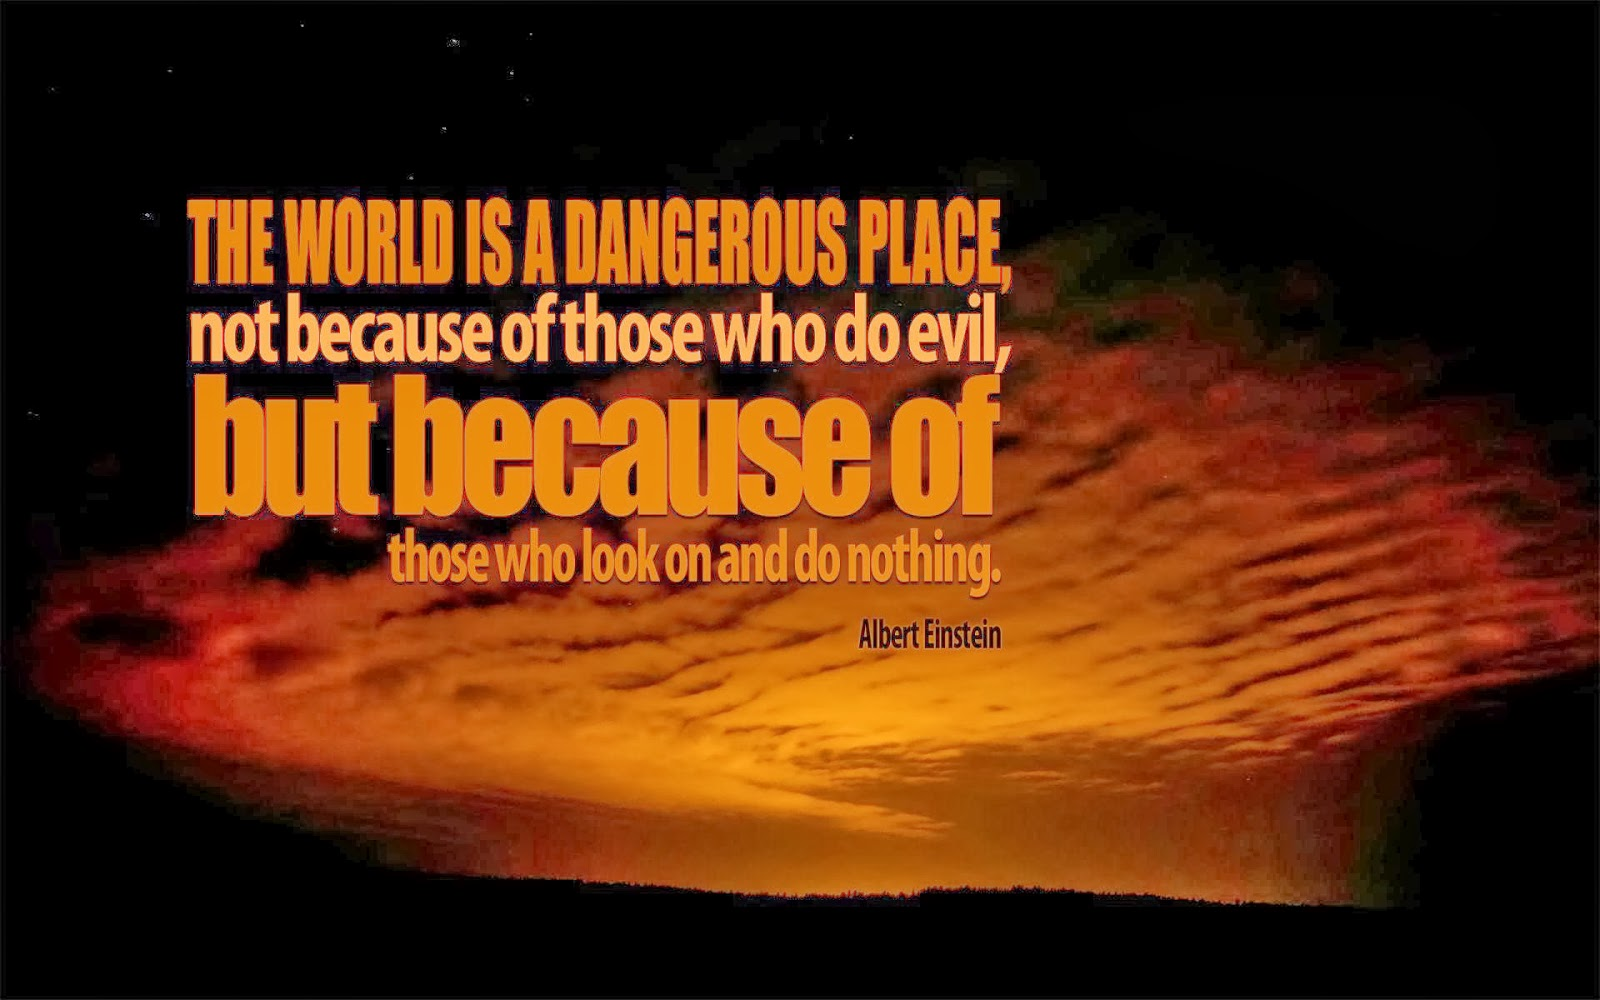 the world is a dangerous place | inspirational wallpapers hd